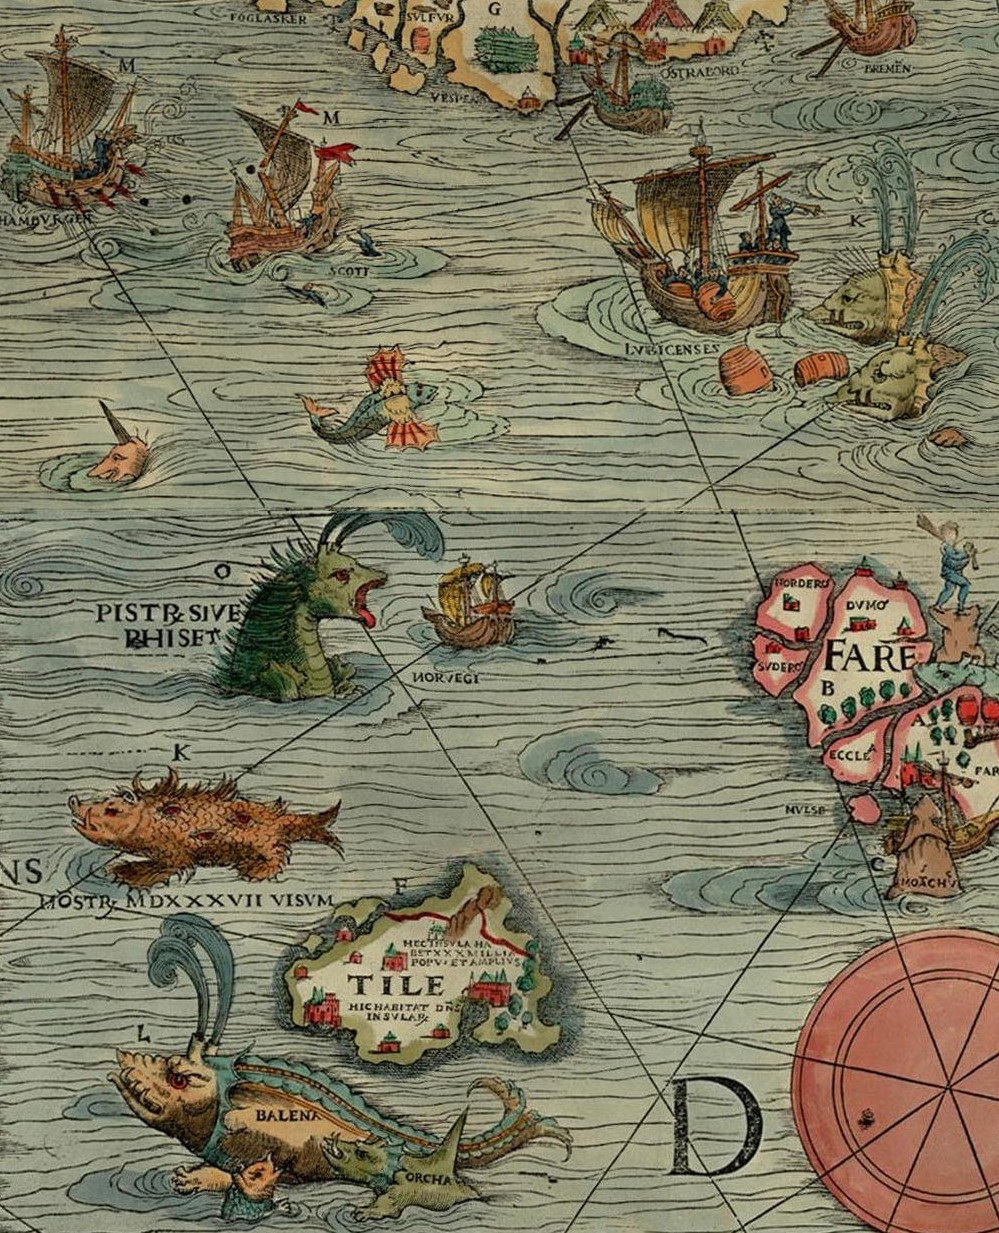 Sea monsters from the Carta Marine of Oalus Magnus, 1539, in the Orkney Museum, Kirkwall, Scotland, UK - Orkneyology.com